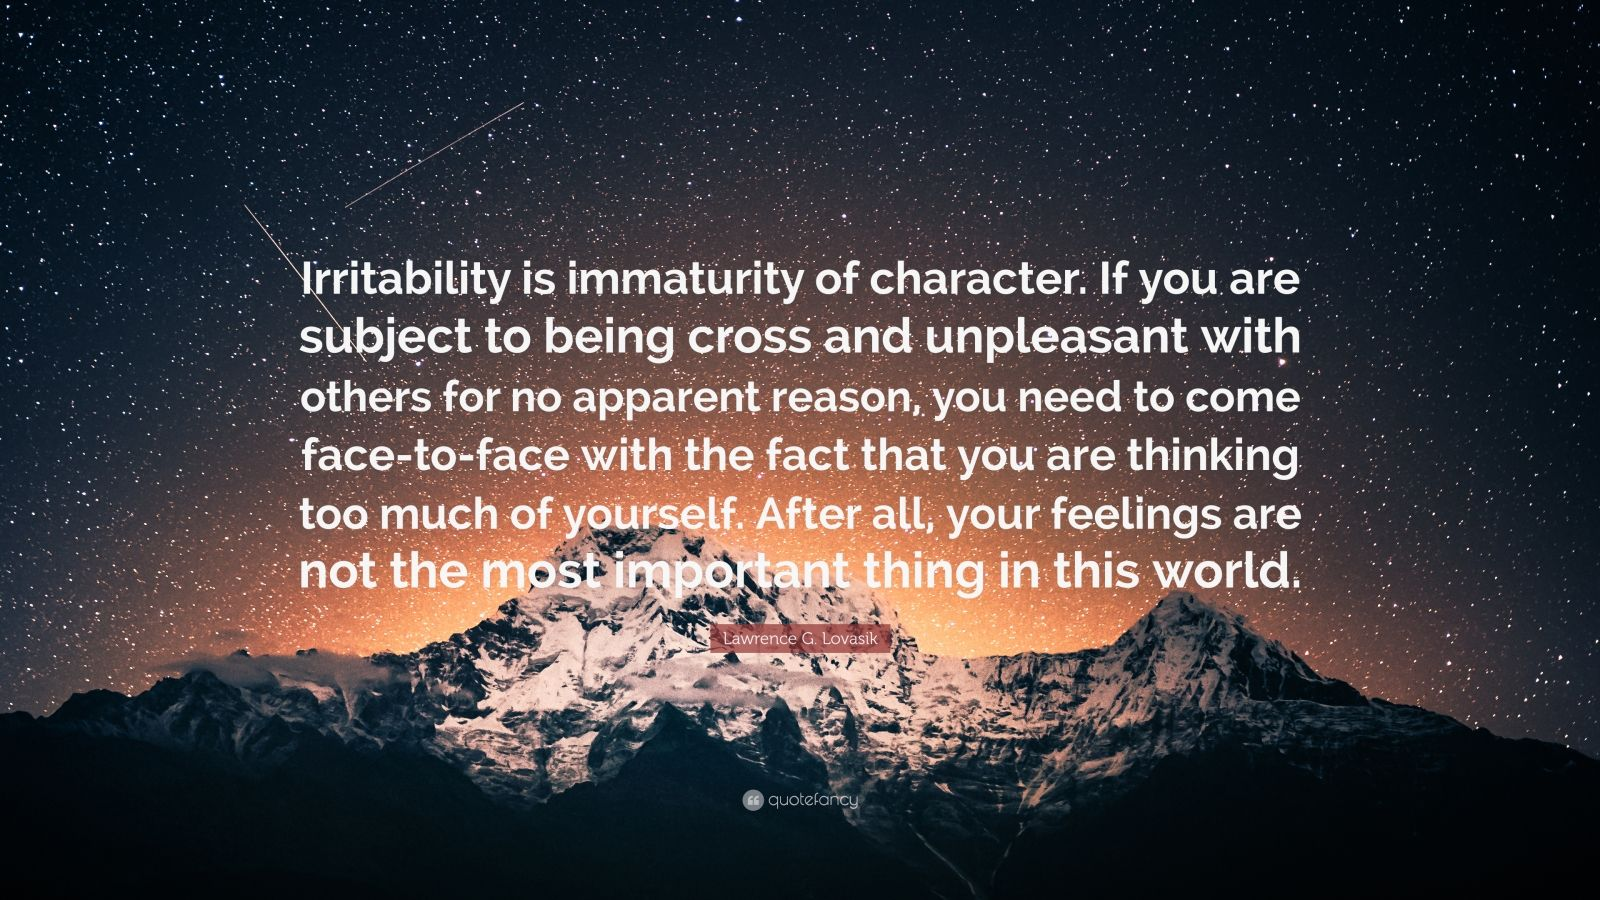 "Lawrence G. Lovasik Quote: ""Irritability is immaturity of character. If you are subject to being cross and unpleasant with others for no apparent reason, you need to come face-to-face with the fact that you are thinking too much of yourself. After all, your feelings are not the most important thing in this world."""